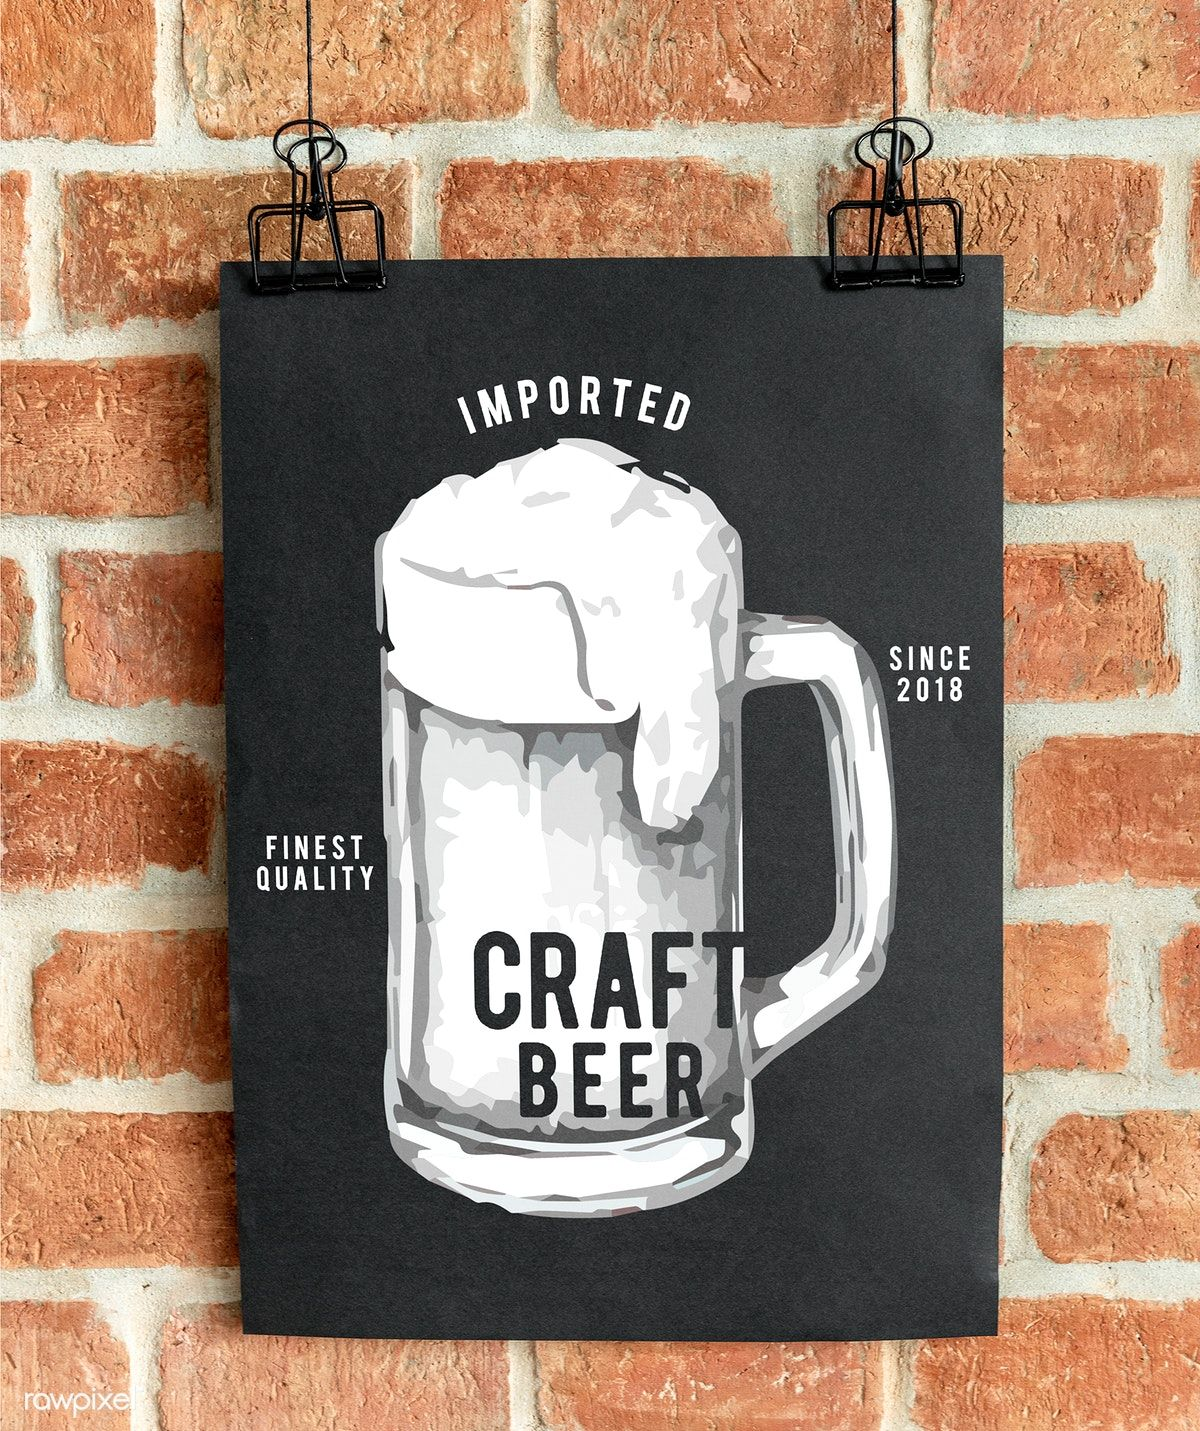 Craft Beer Pub Poster Mockup Free Image By Rawpixel Com Ake In 2021 Beer Pub Poster Mockup Craft Beer